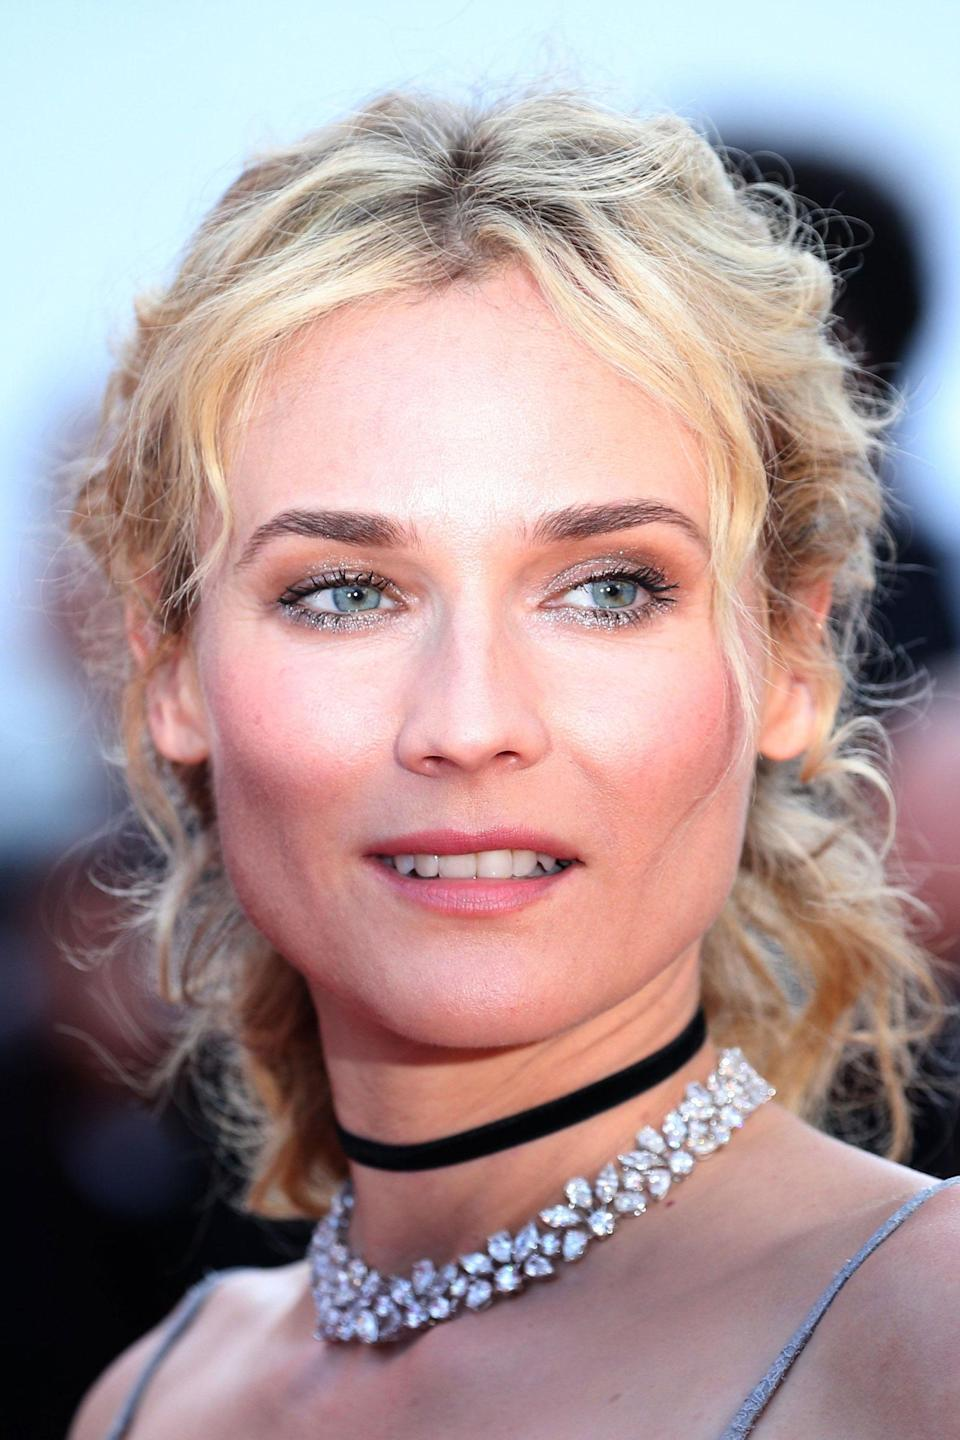 <p>Kruger matched her make-up to her jewels, with dazzling metallic eye shadow. Her hair was styled in full bodied waves, crafted together in a half-up style at the back.</p>